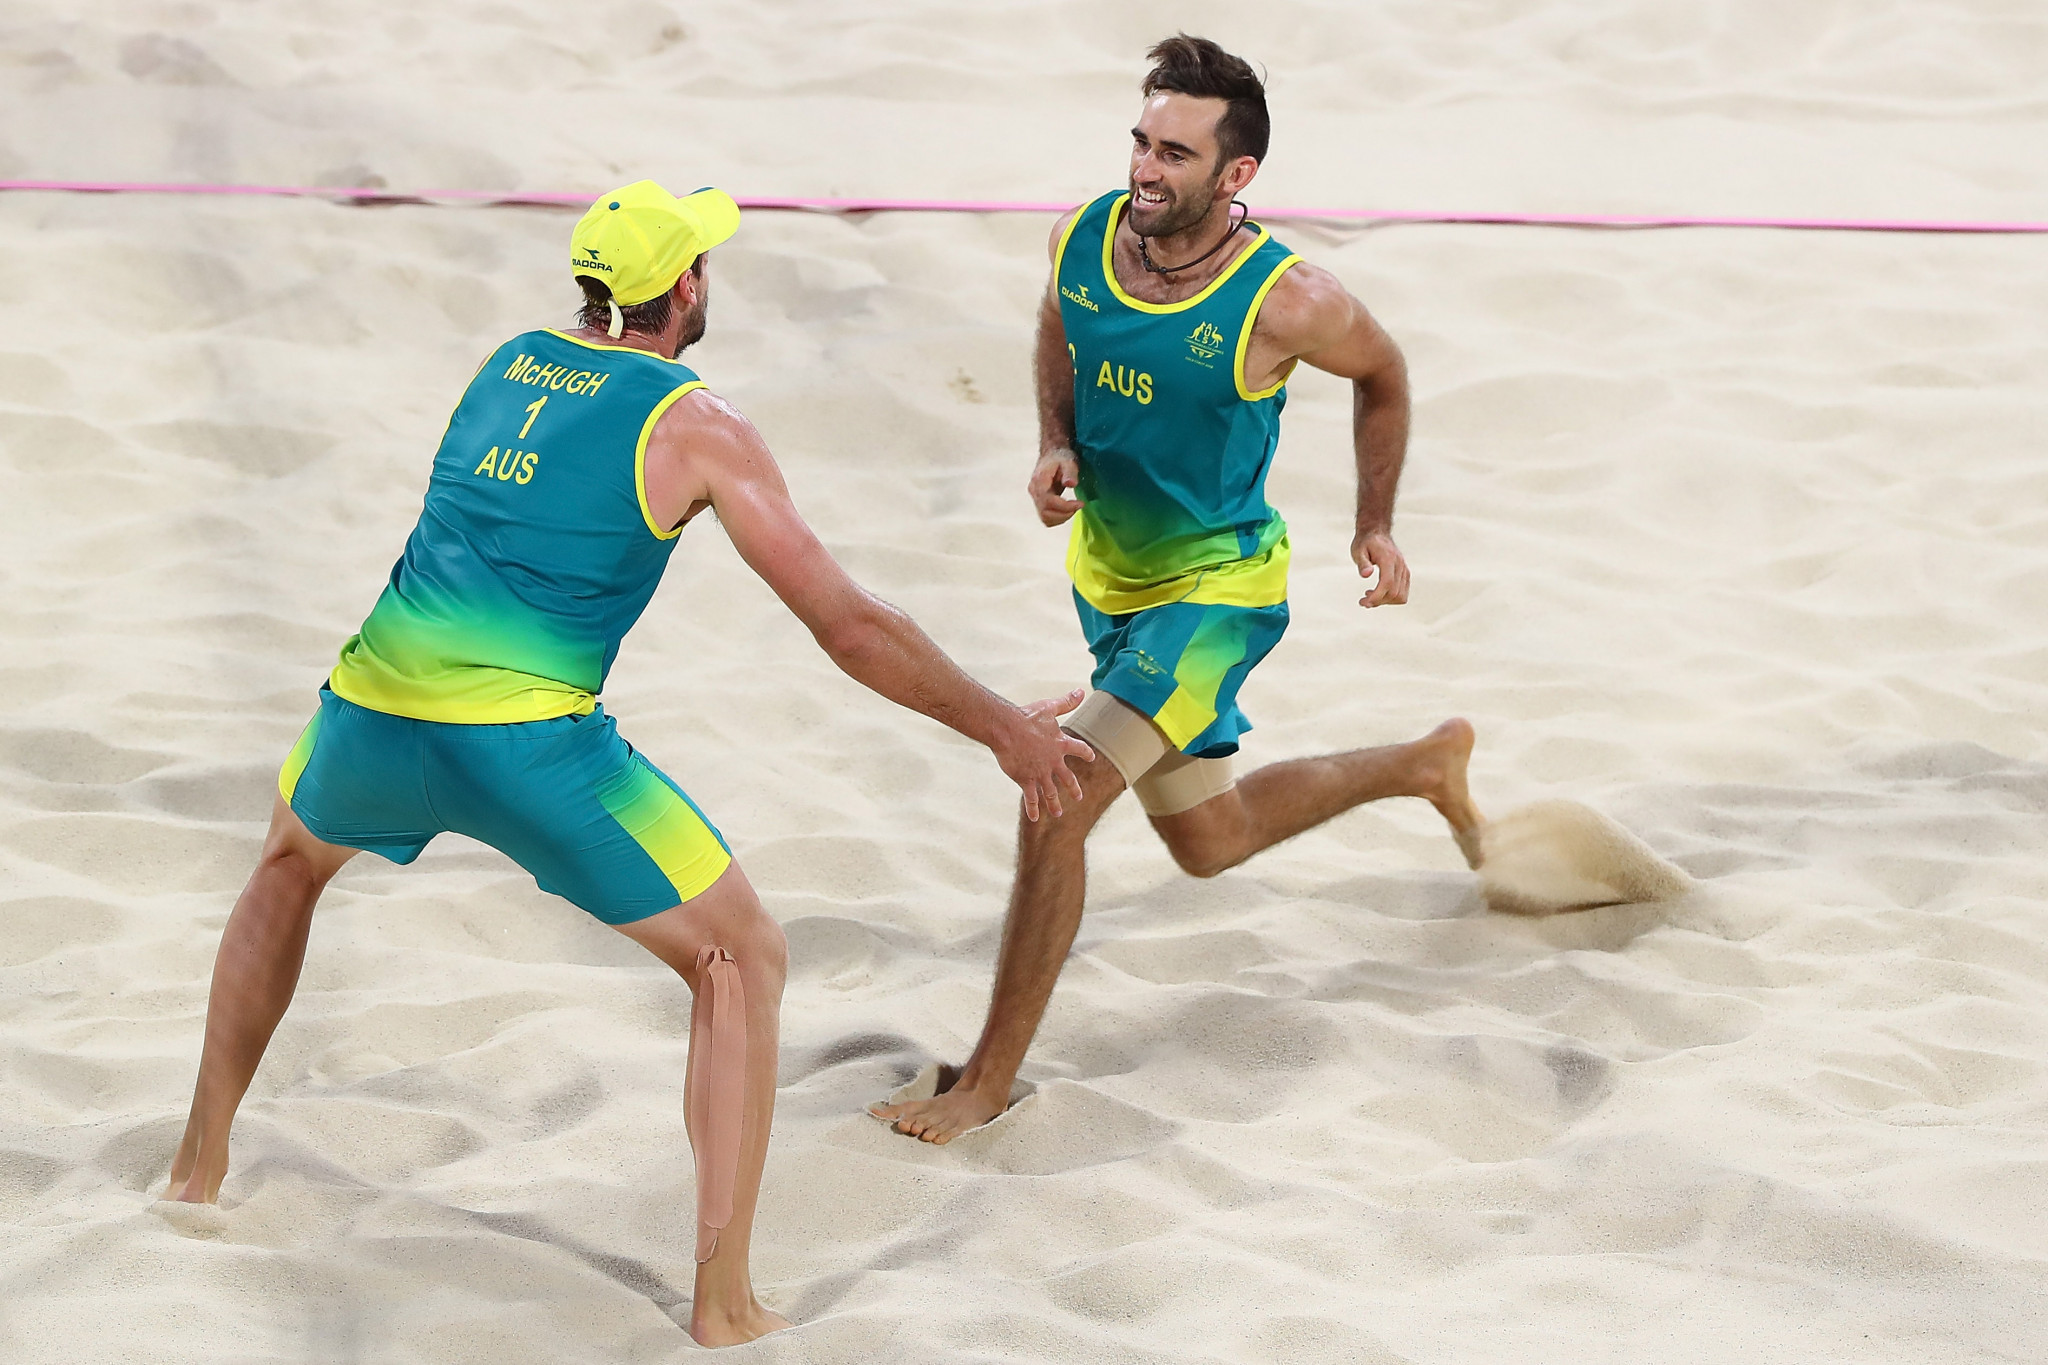 Chris McHugh and Damien Schumann of Australia were crowned the first Commonwealth Games beach volleyball champions ©Getty Images